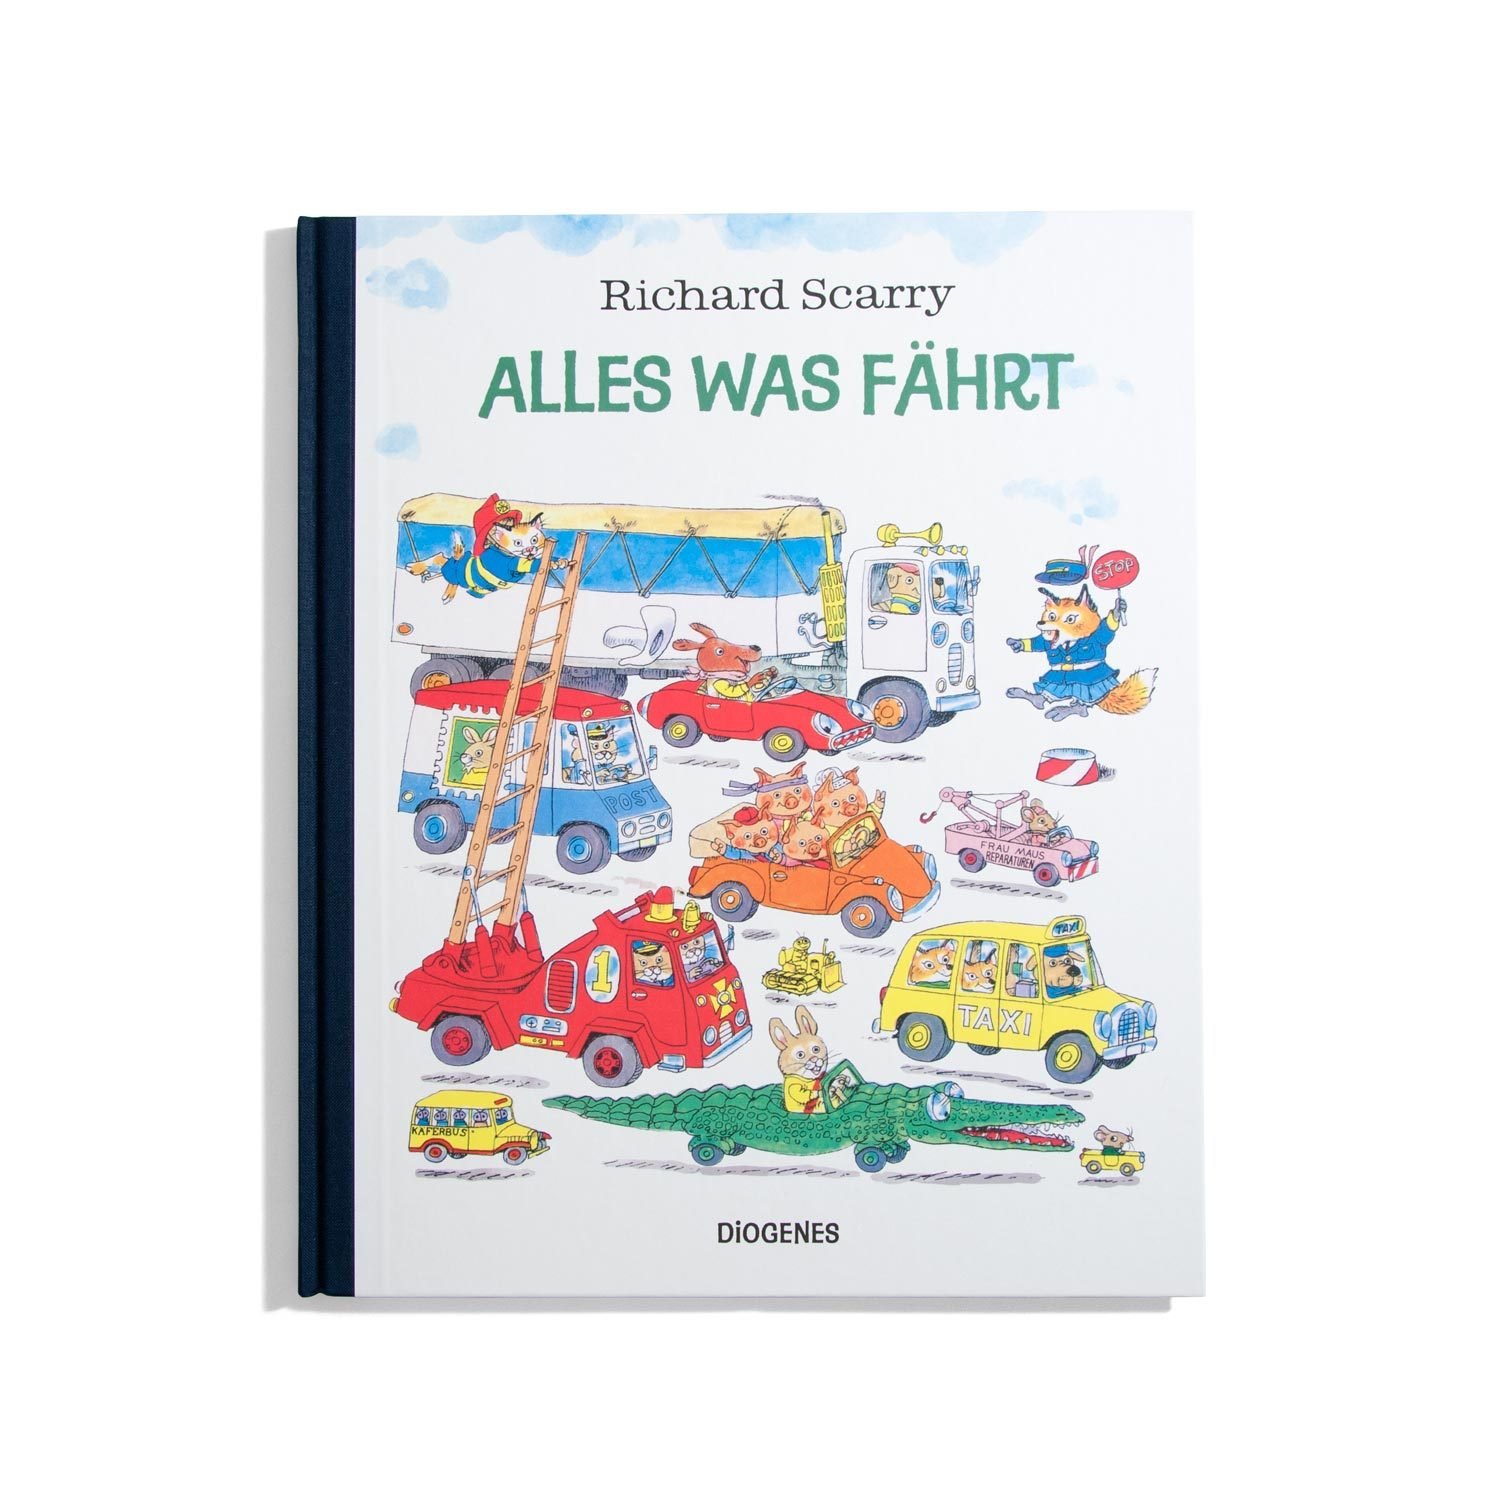 Alles was fährt - Richard Scarry